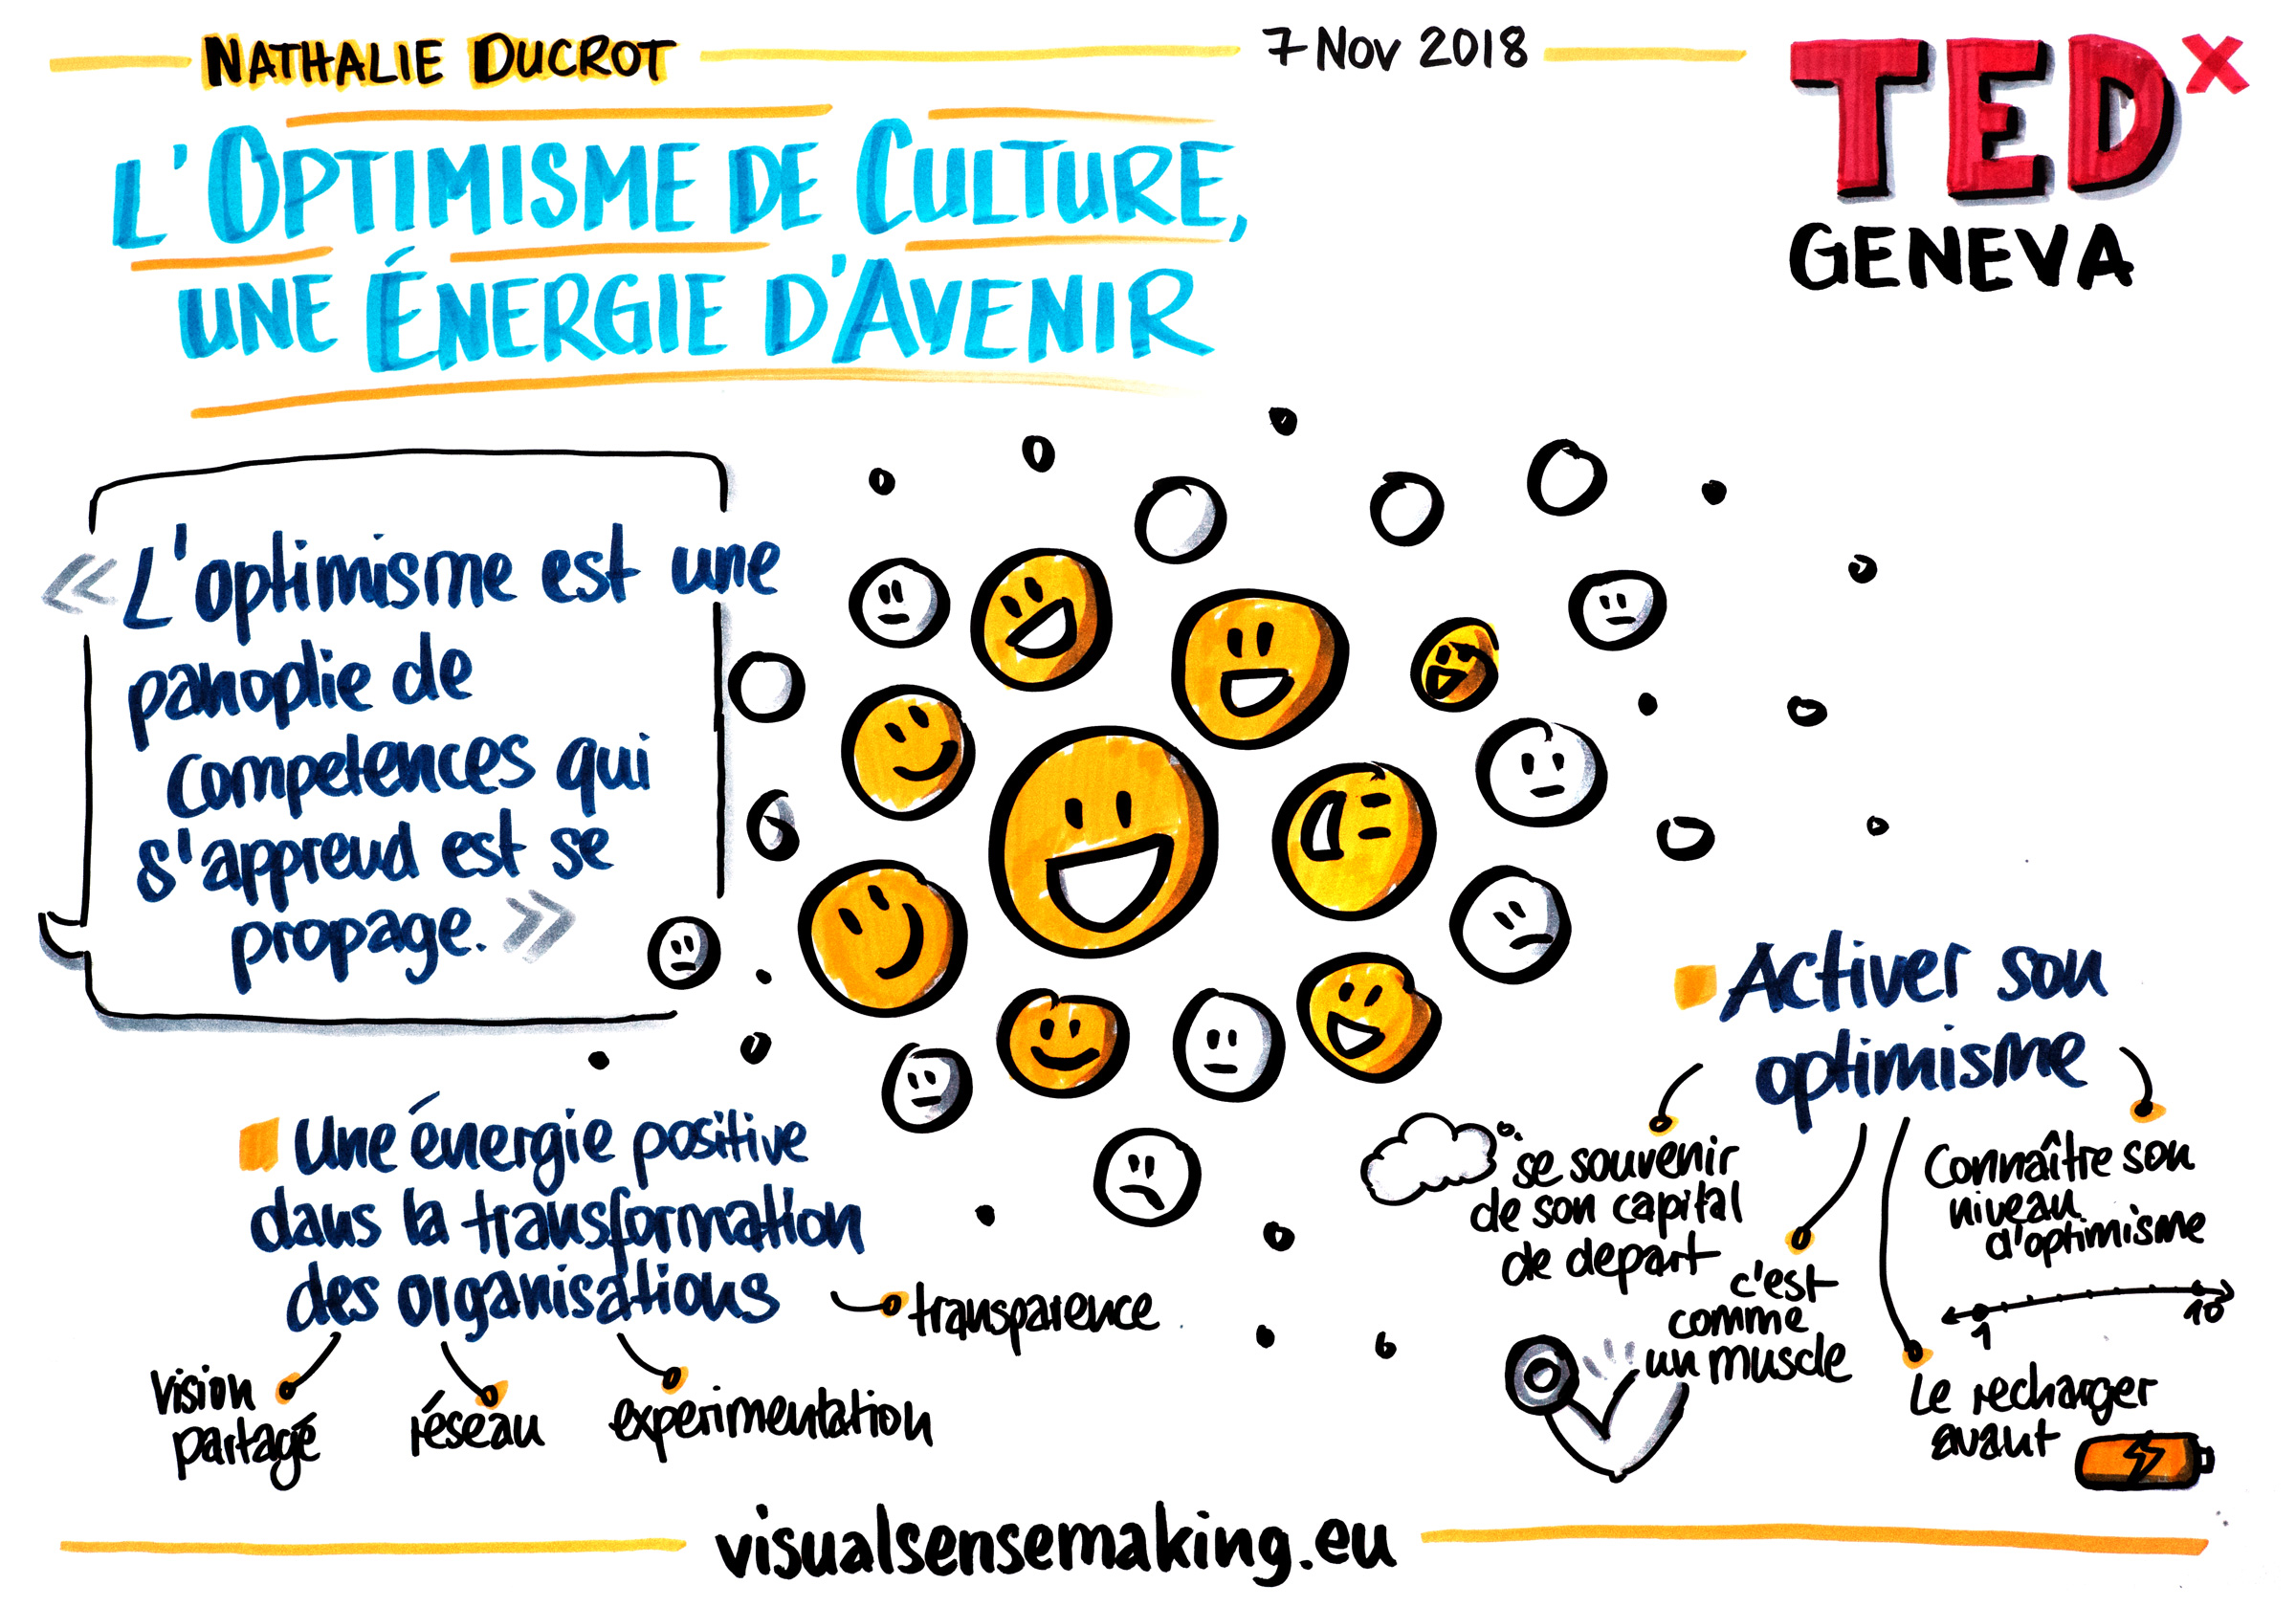 Visual summary of the talk 'L'optimisme de culture, une énergie d'avenir'